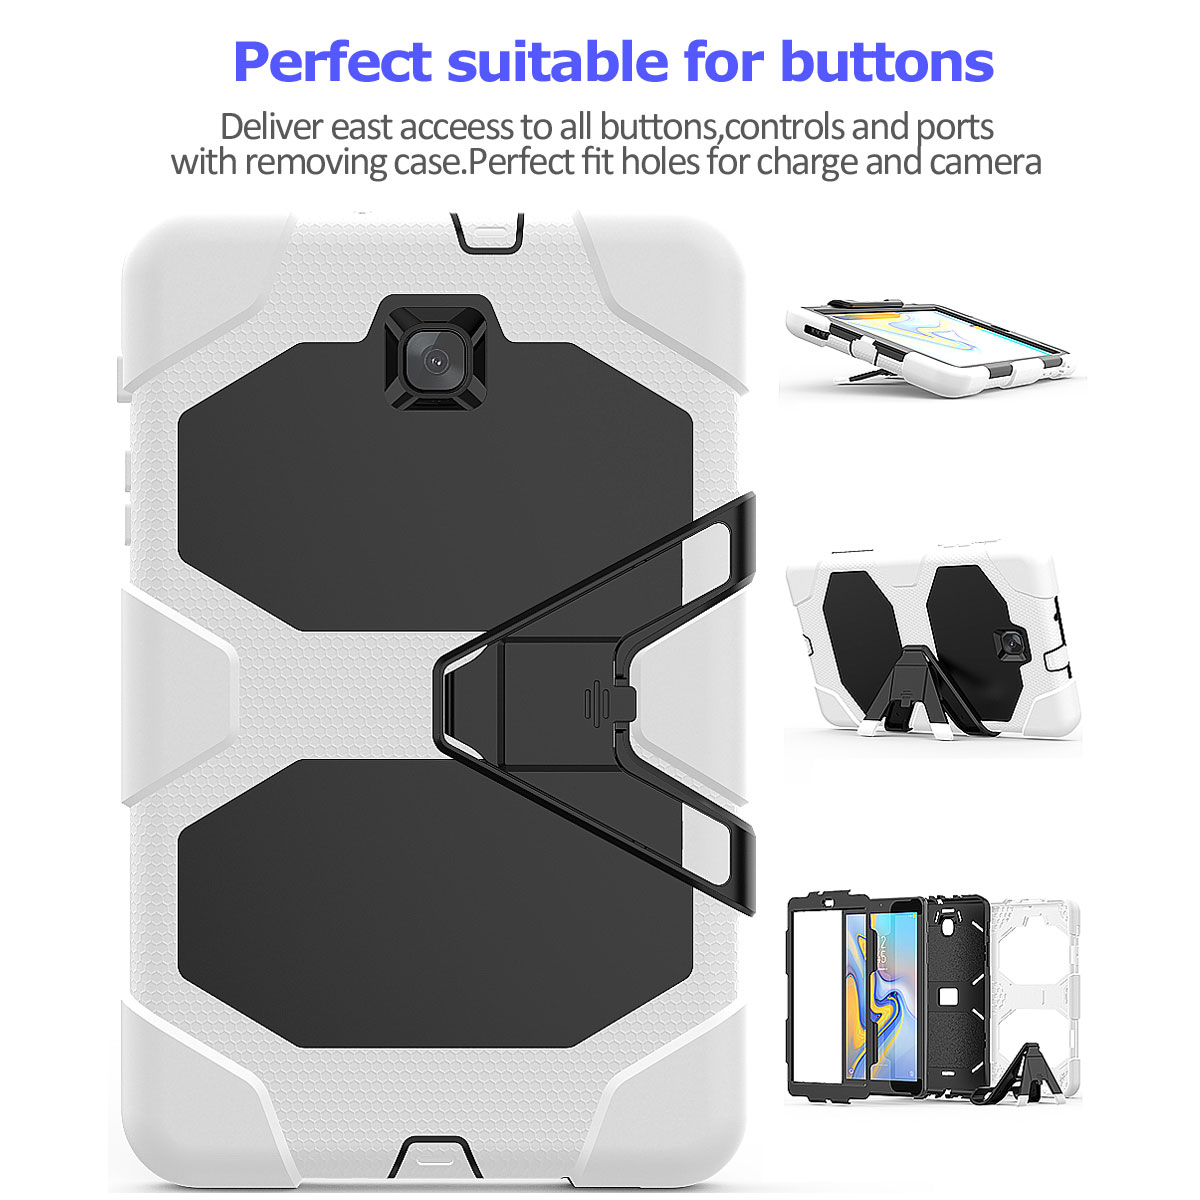 Rugged-Hard-Case-For-Samsung-Galaxy-Tab-A-8-0-2018-SM-T387-with-Screen-Protector thumbnail 39